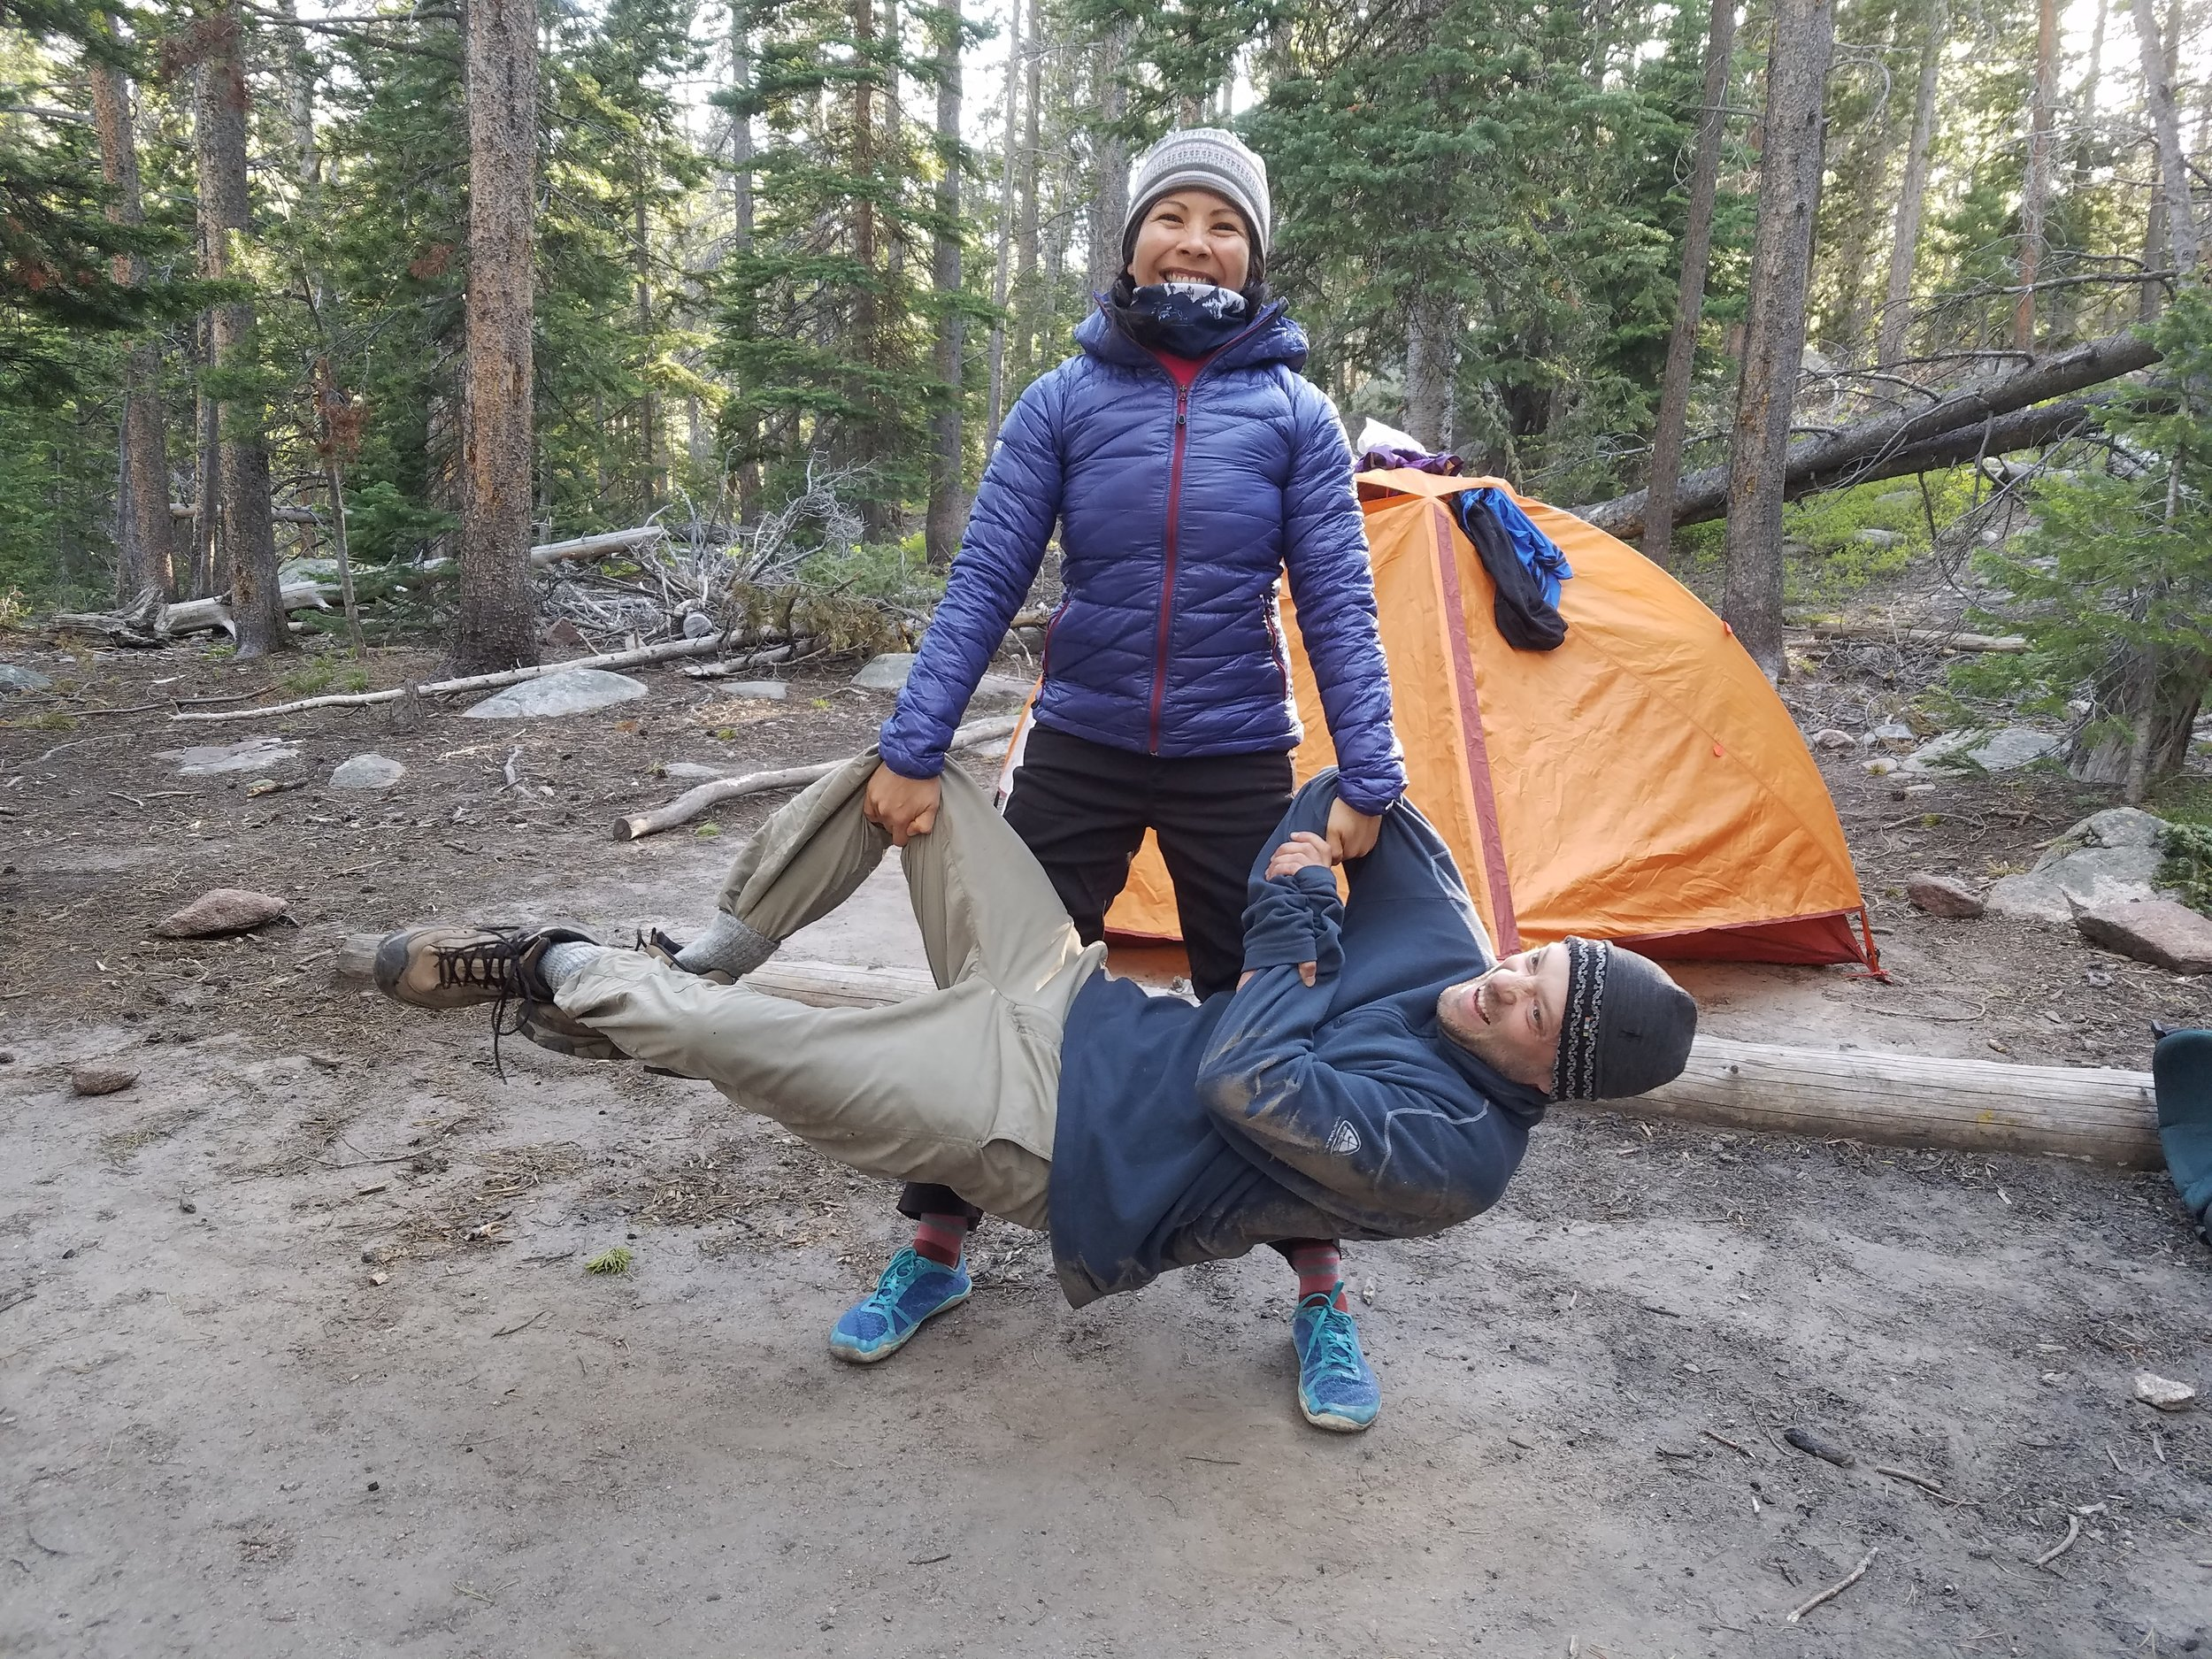 Jackie picks up her friend while on a camping trip